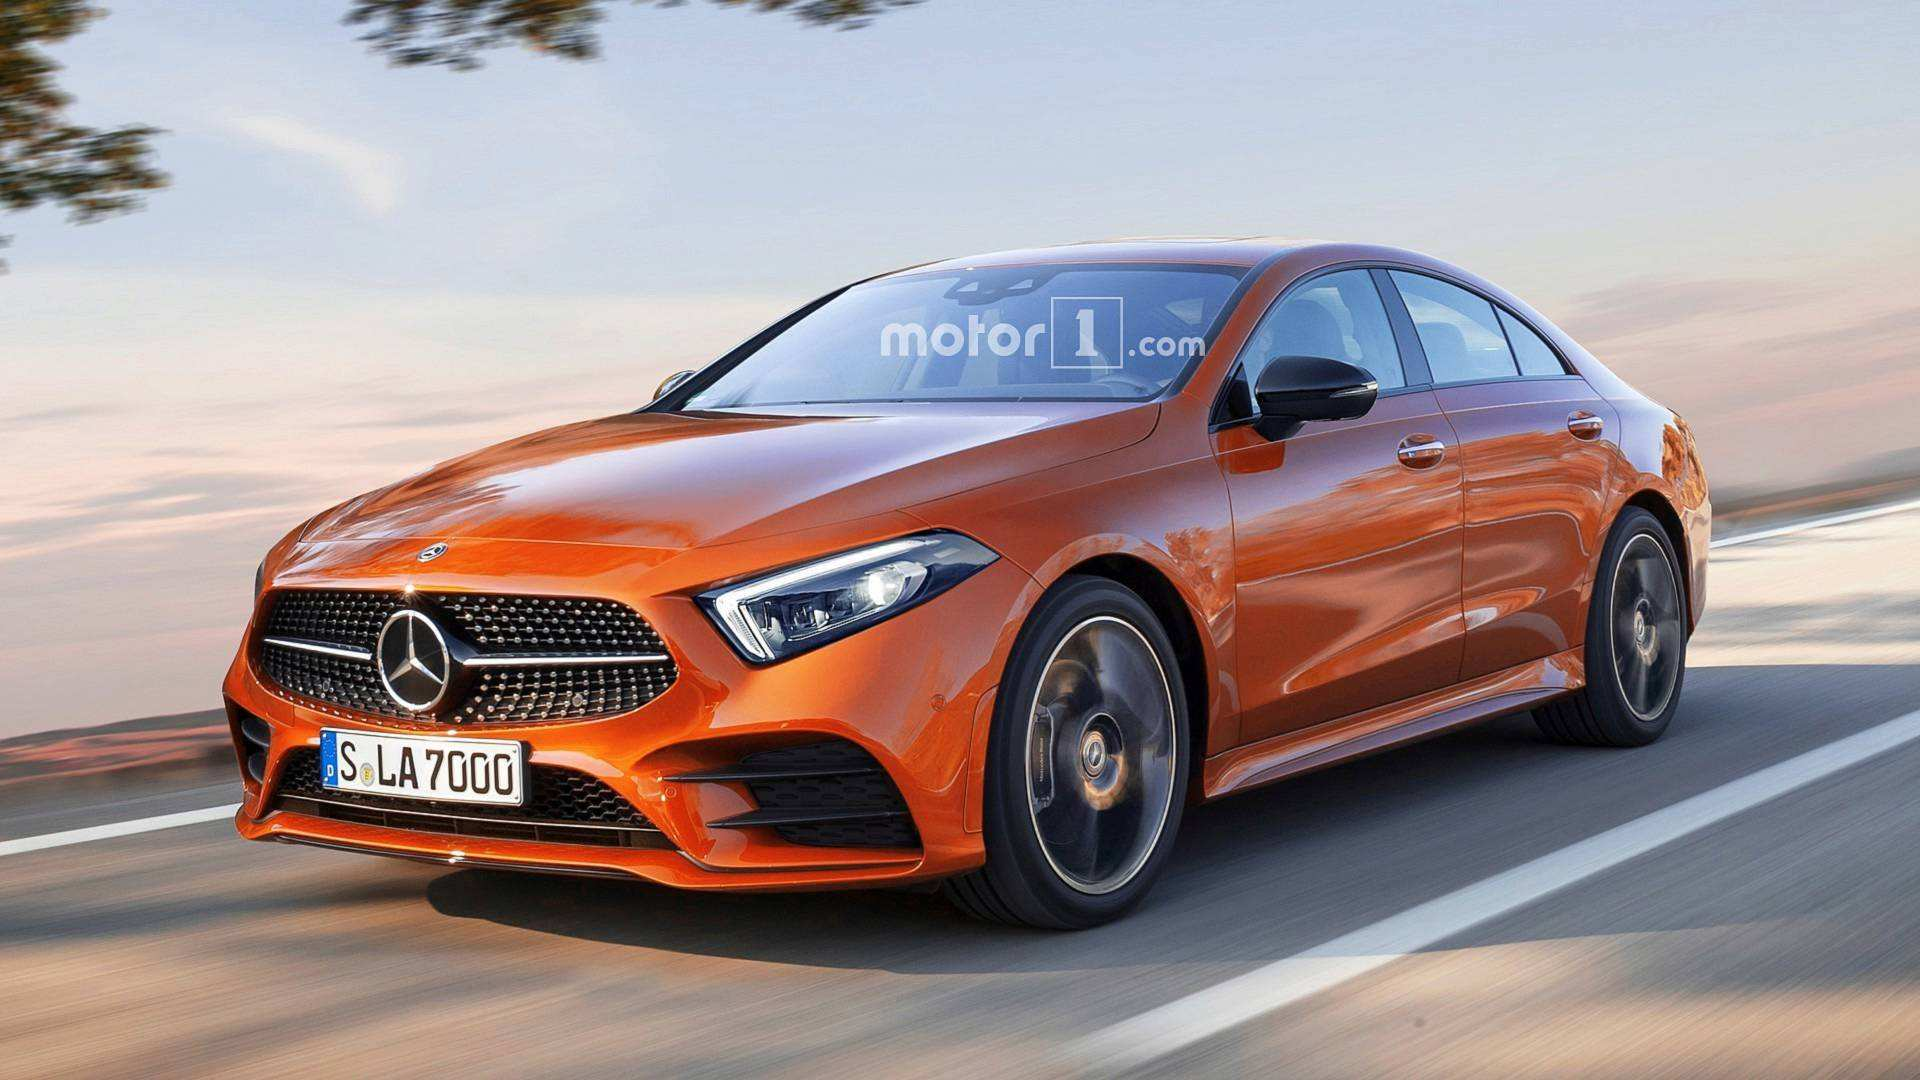 99 Gallery of Mercedes A Klass 2020 Exterior and Interior with Mercedes A Klass 2020